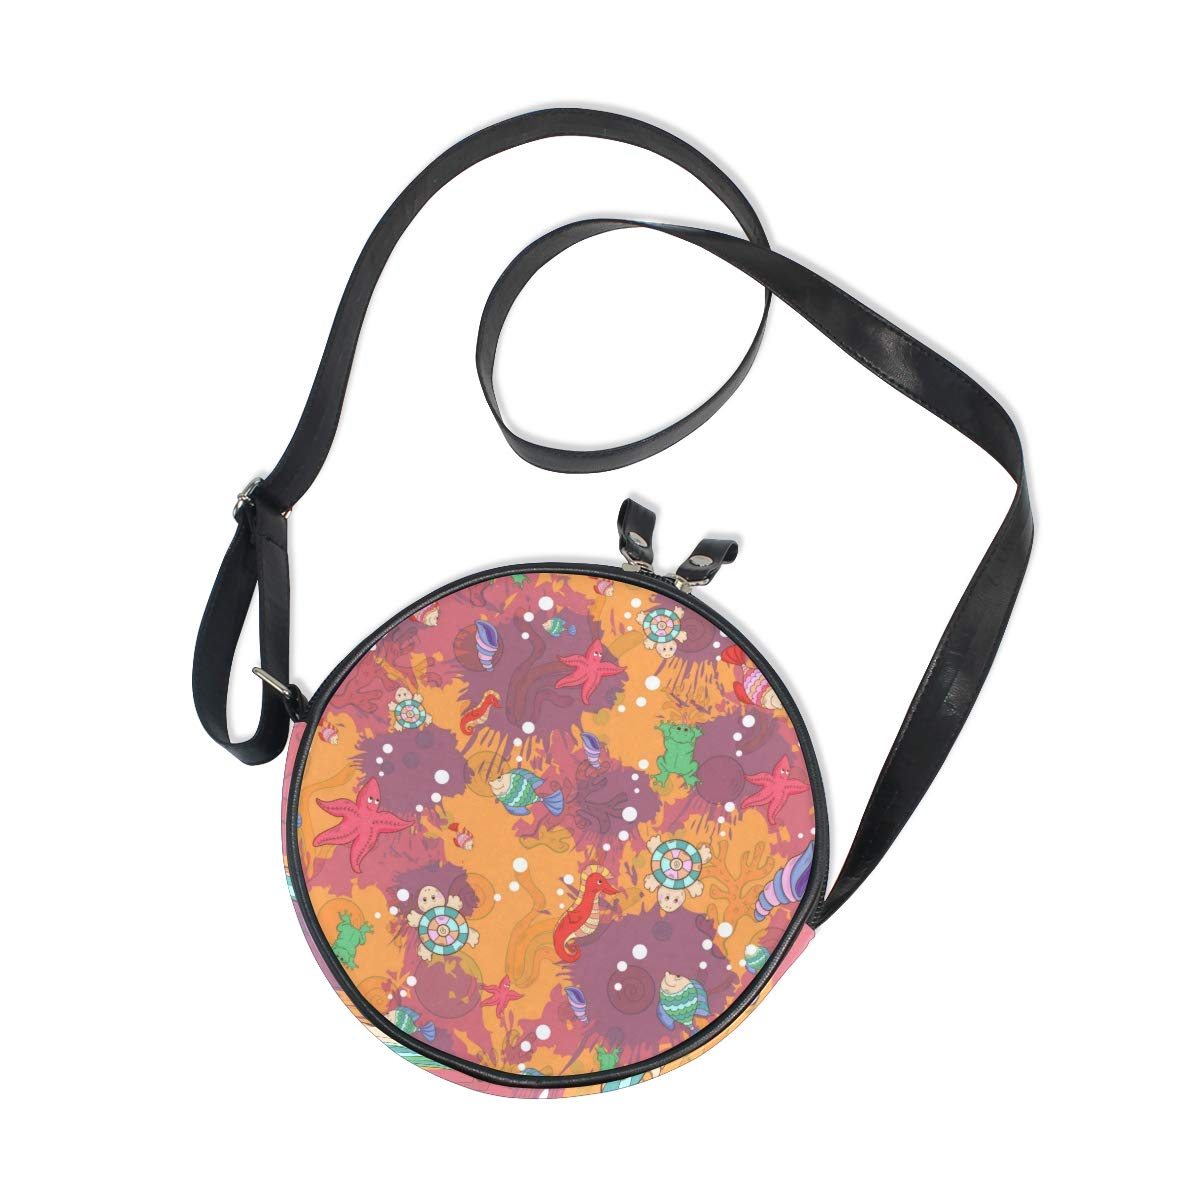 KEAKIA Abstract Marine Life Round Crossbody Bag Shoulder Sling Bag Handbag Purse Satchel Shoulder Bag for Kids Women